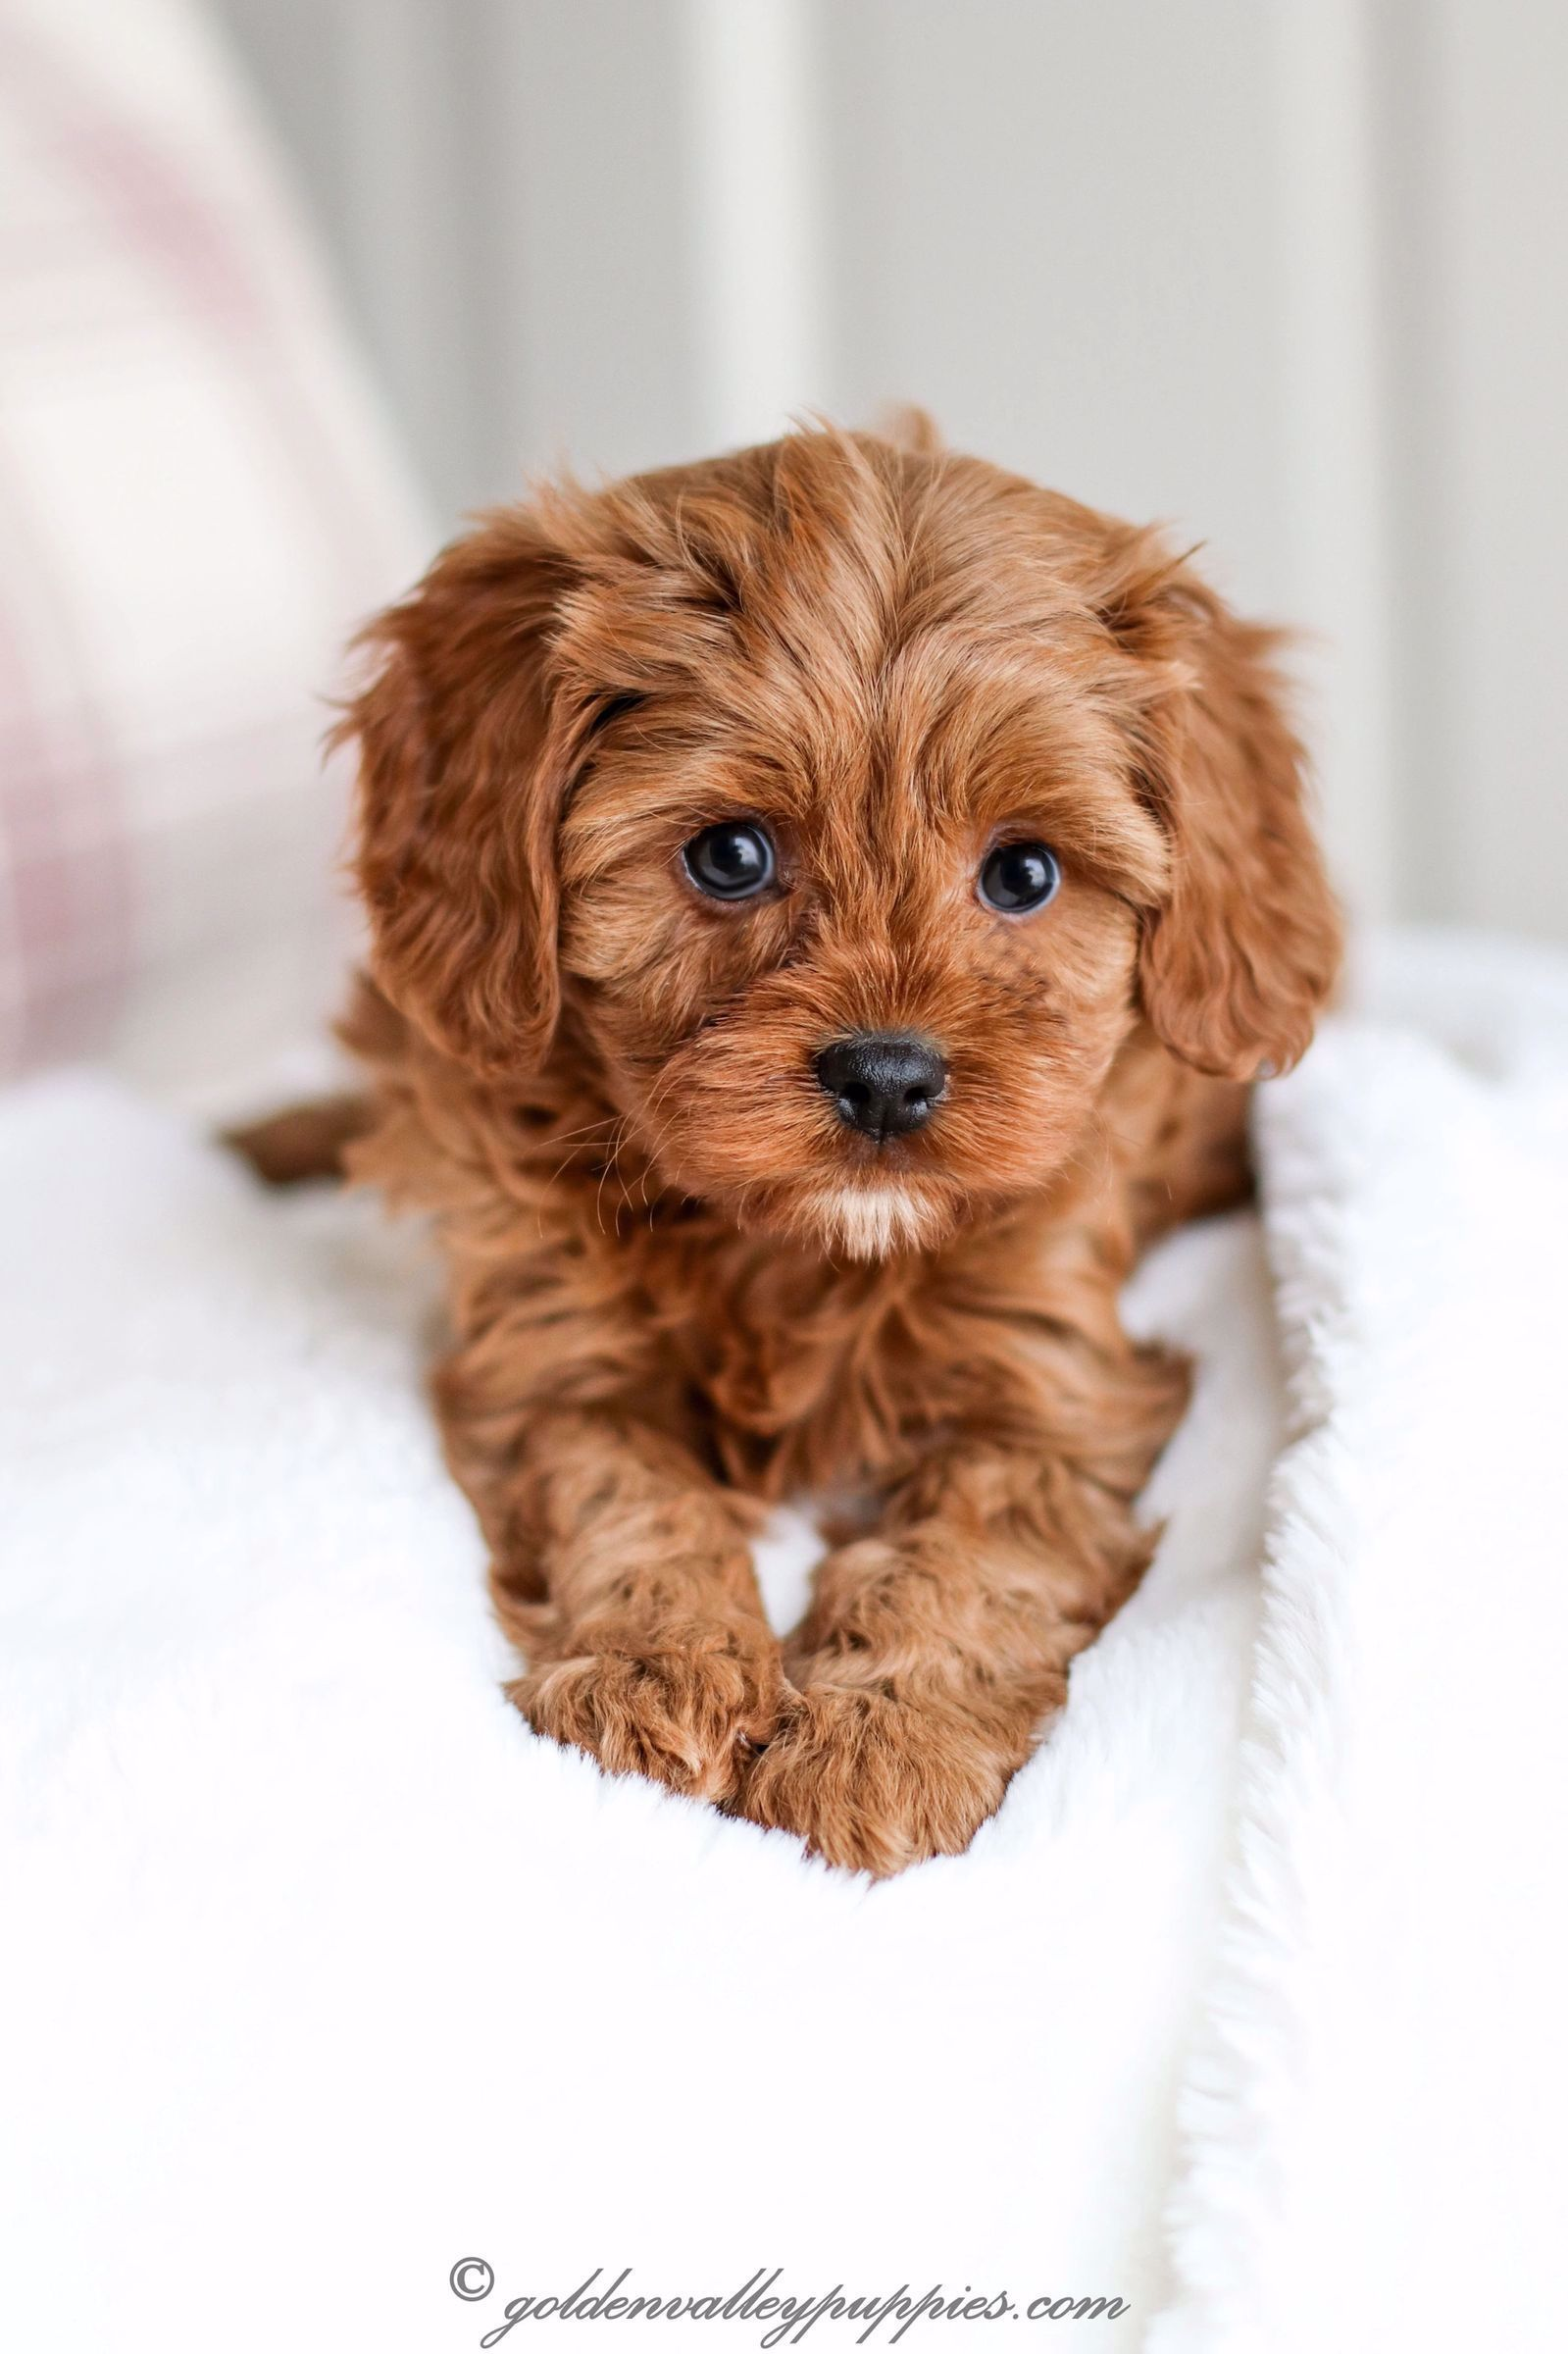 Our Puppy Album Cavapoo Puppies For Sale Golden Valley Puppies Cavapoo Puppies King Charles Cavalier Mix In 2020 Cute Puppies Cute Dogs And Puppies Cute Animals